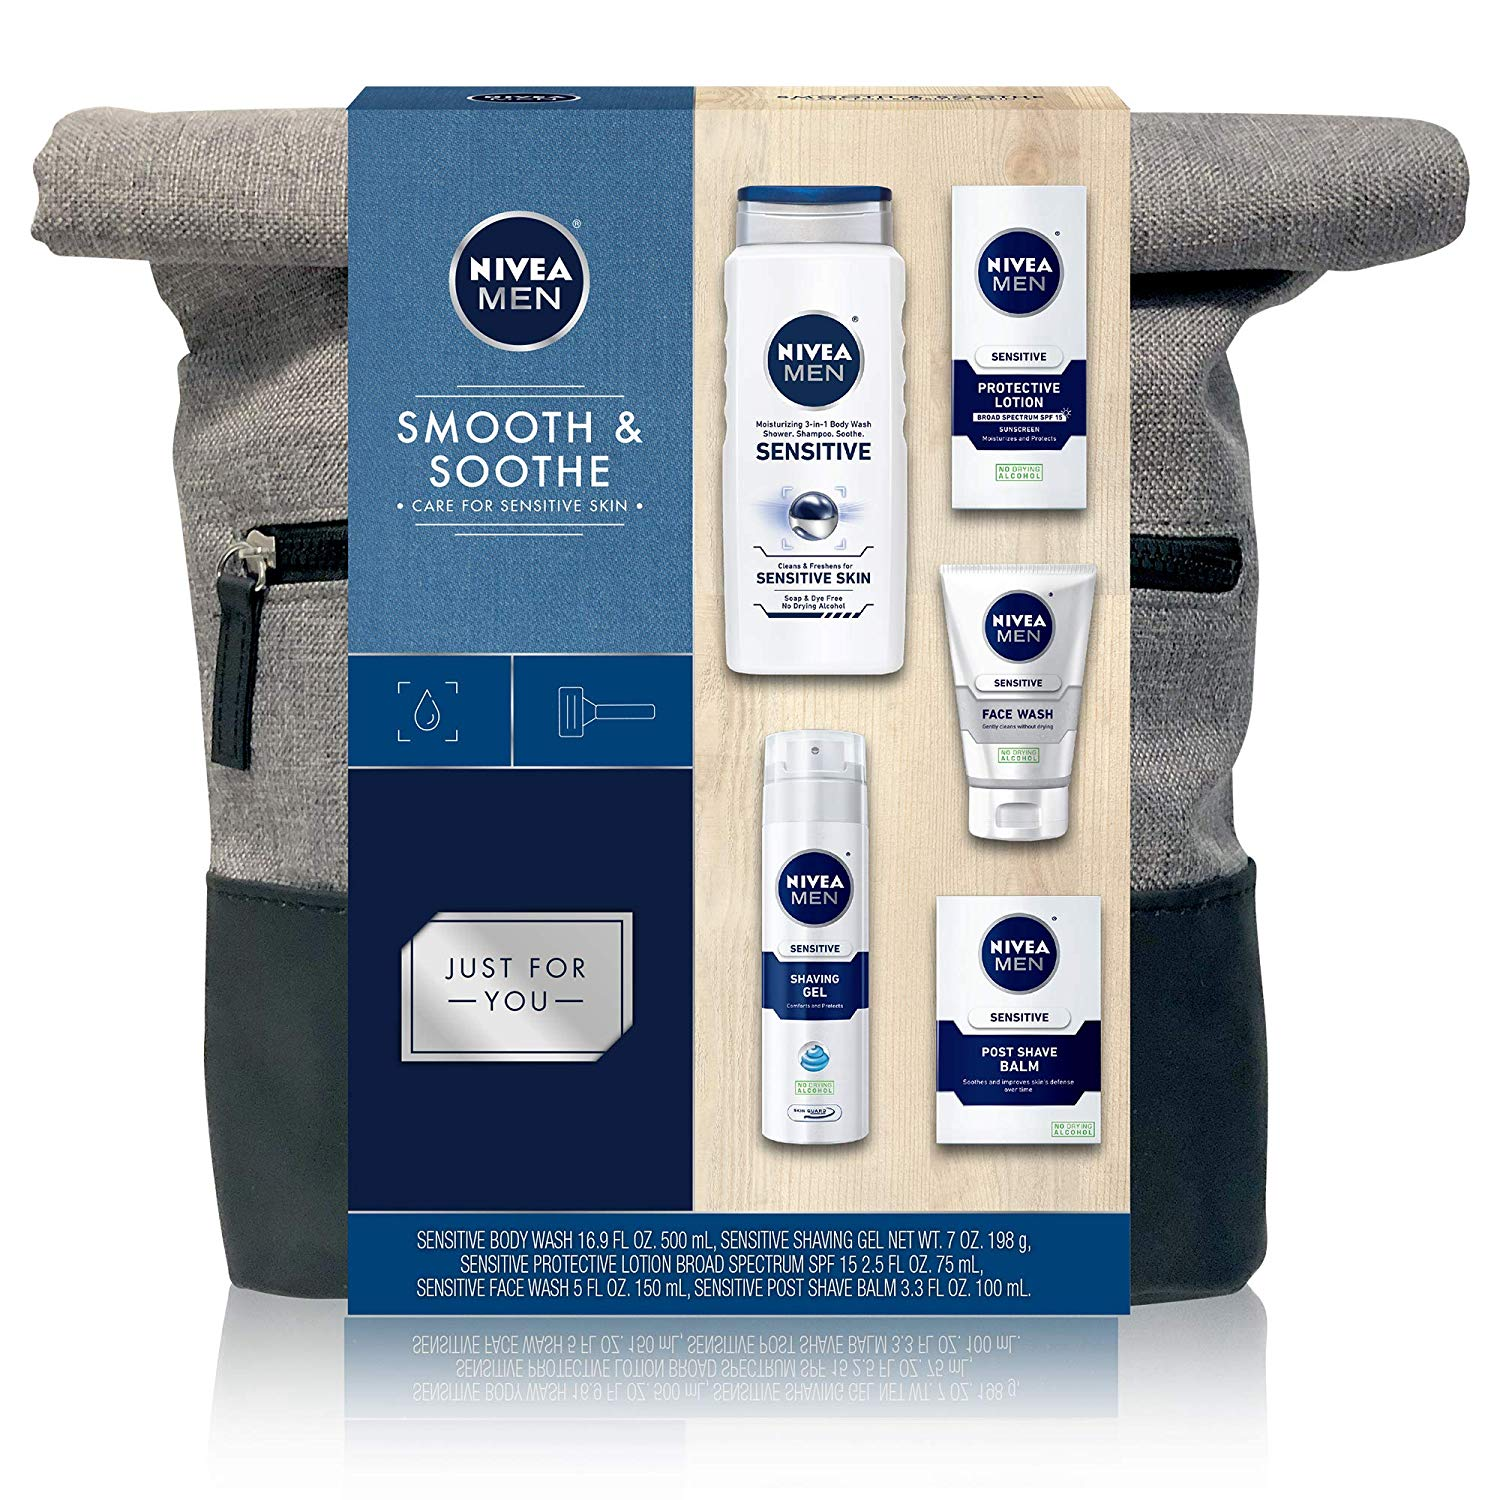 NIVEA Men Dapper Duffel, Pre-packaged Shaving Essentials